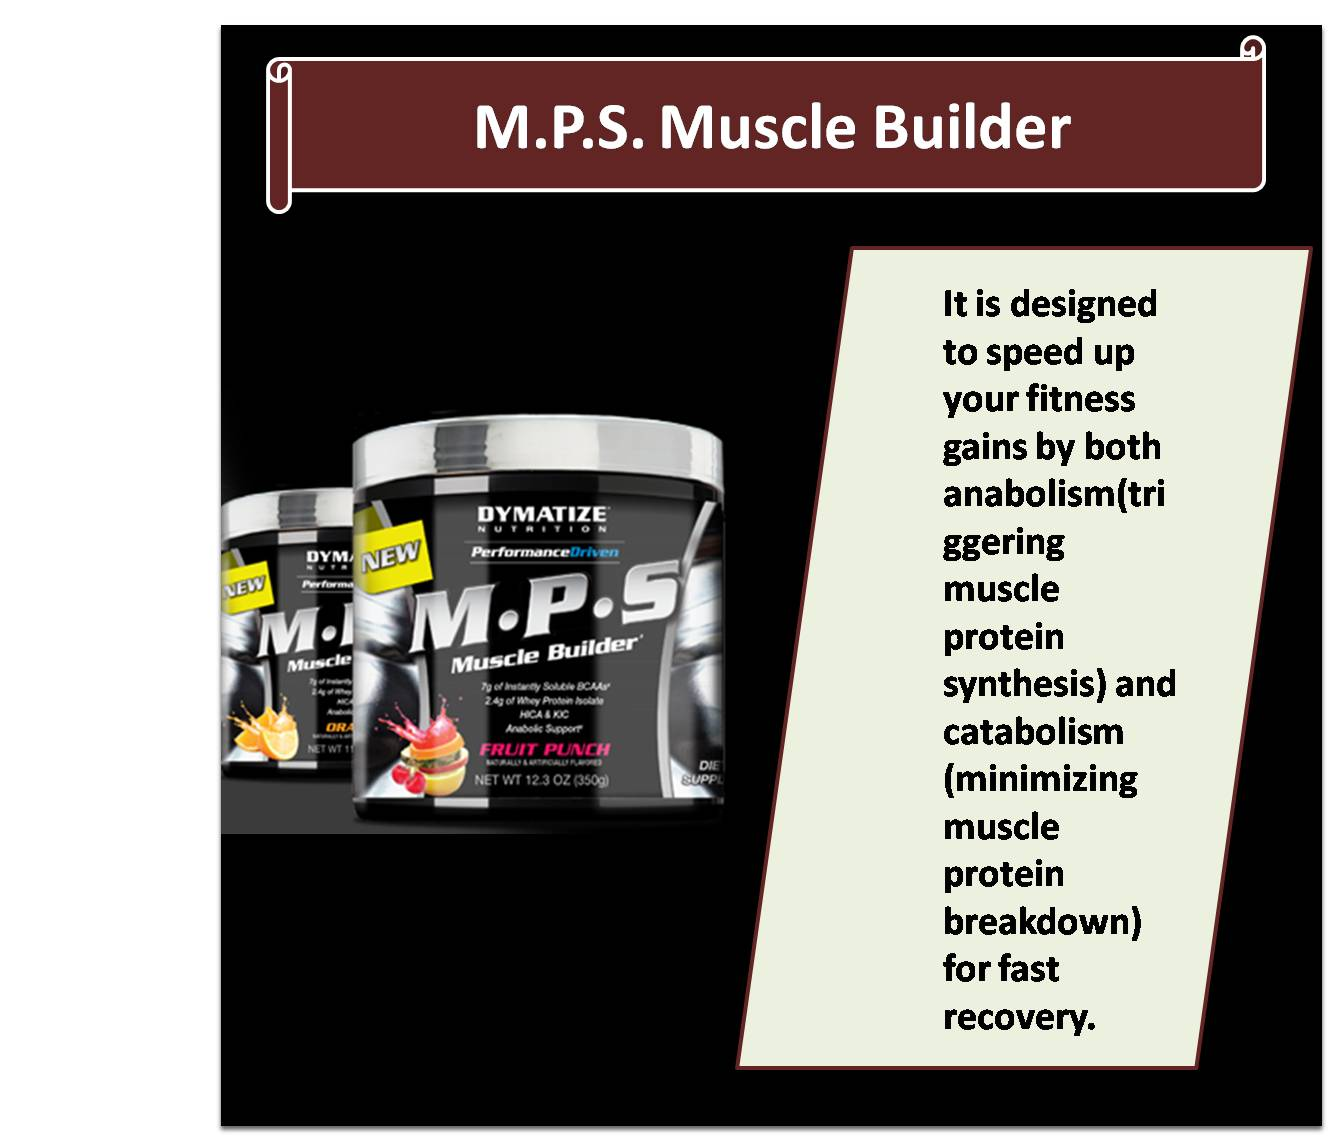 M.P.S. Muscle Builder